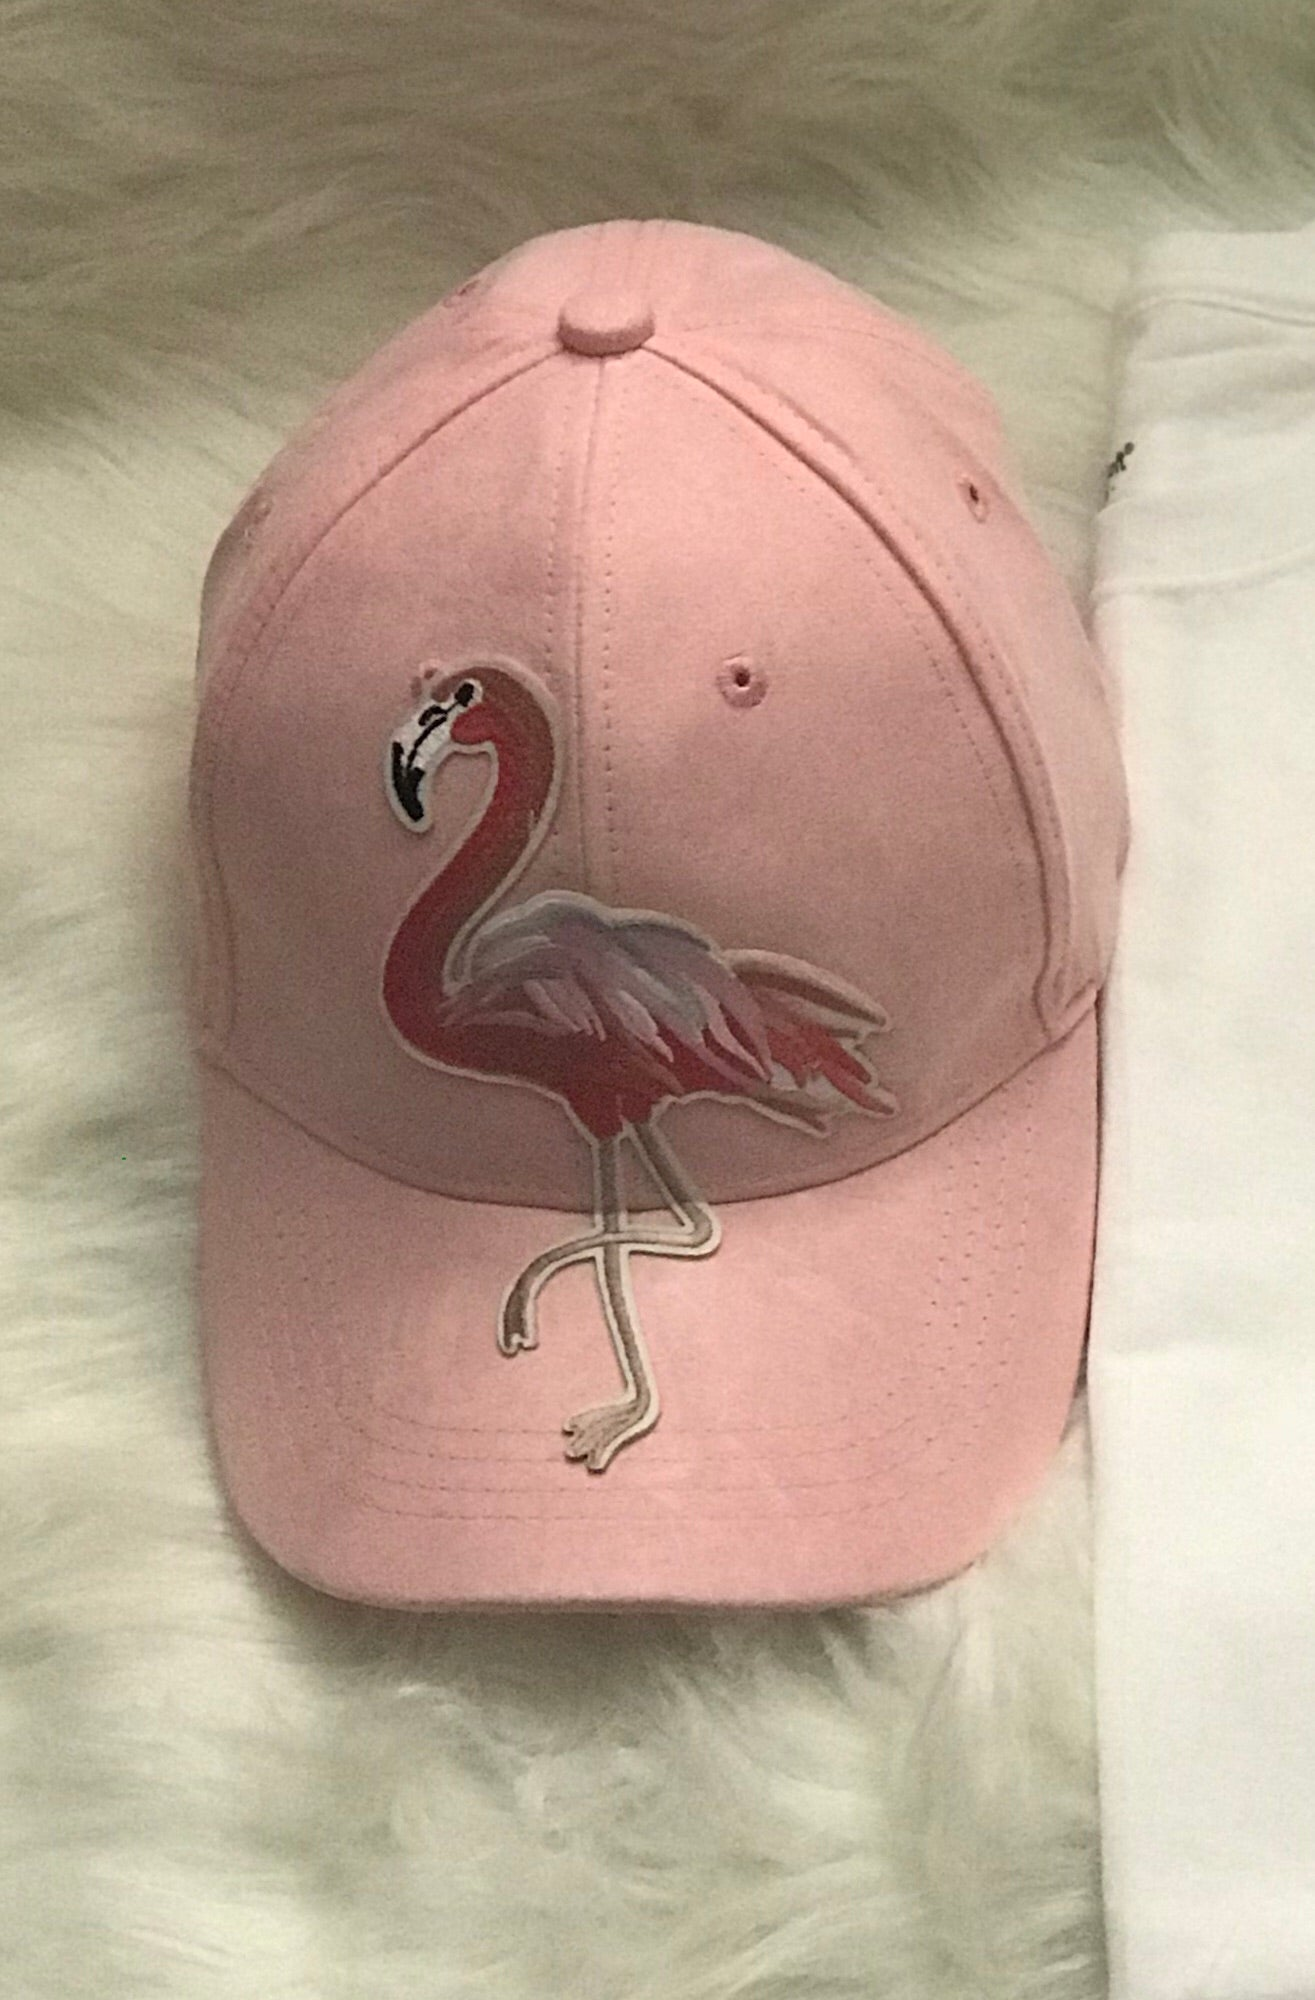 Flamingo hat 🤩